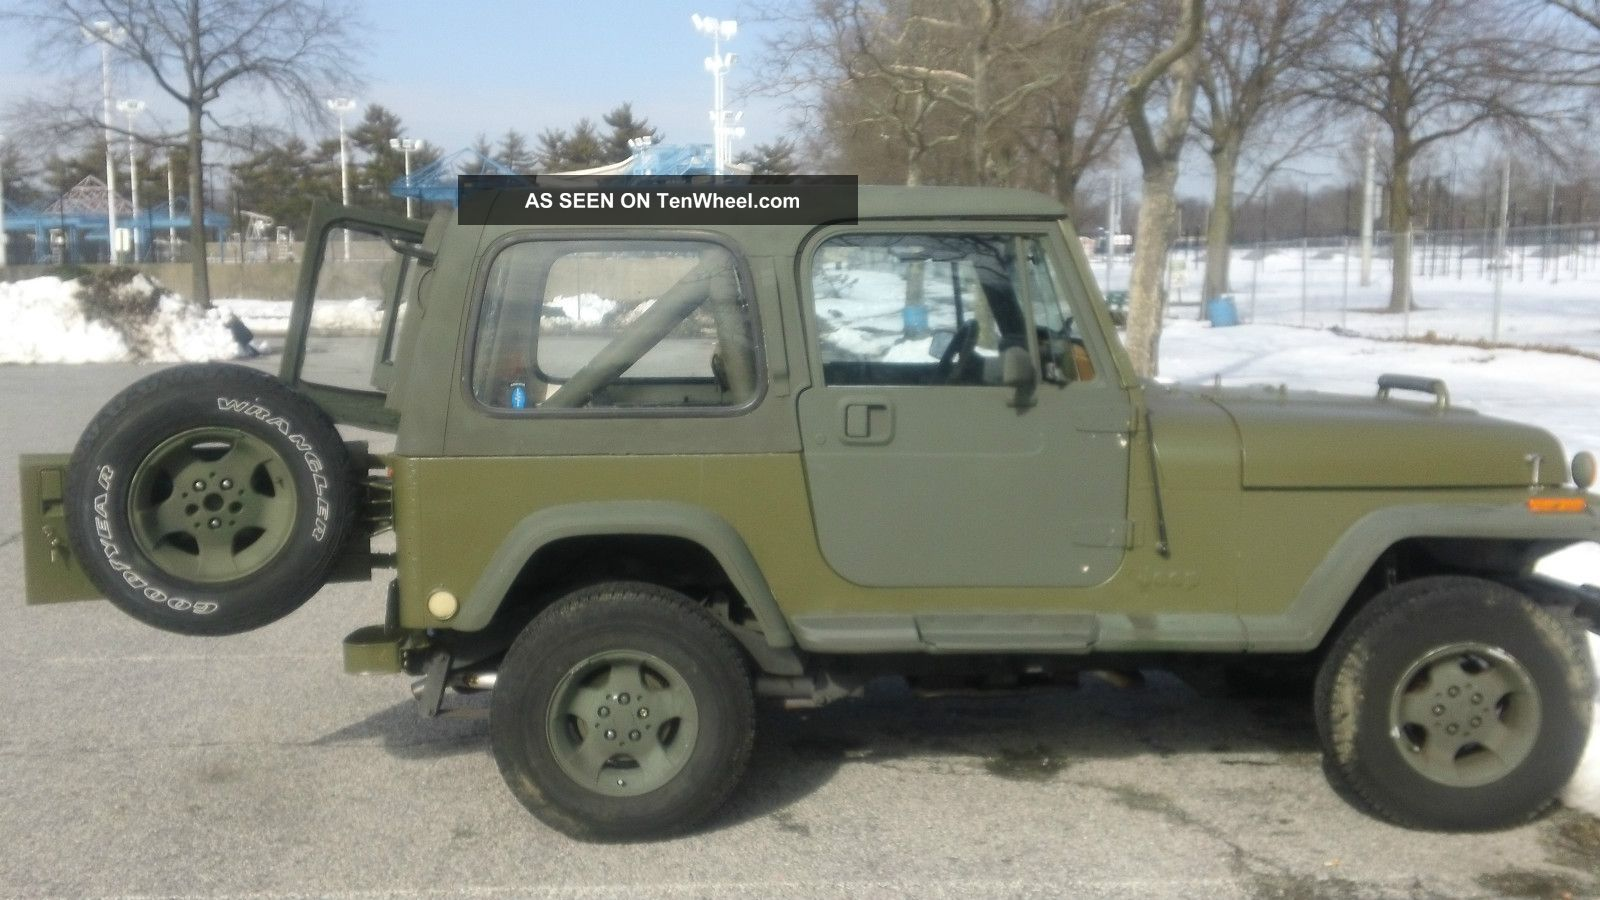 1988 jeep wrangler yj 6 cyl condition fair green od. Cars Review. Best American Auto & Cars Review